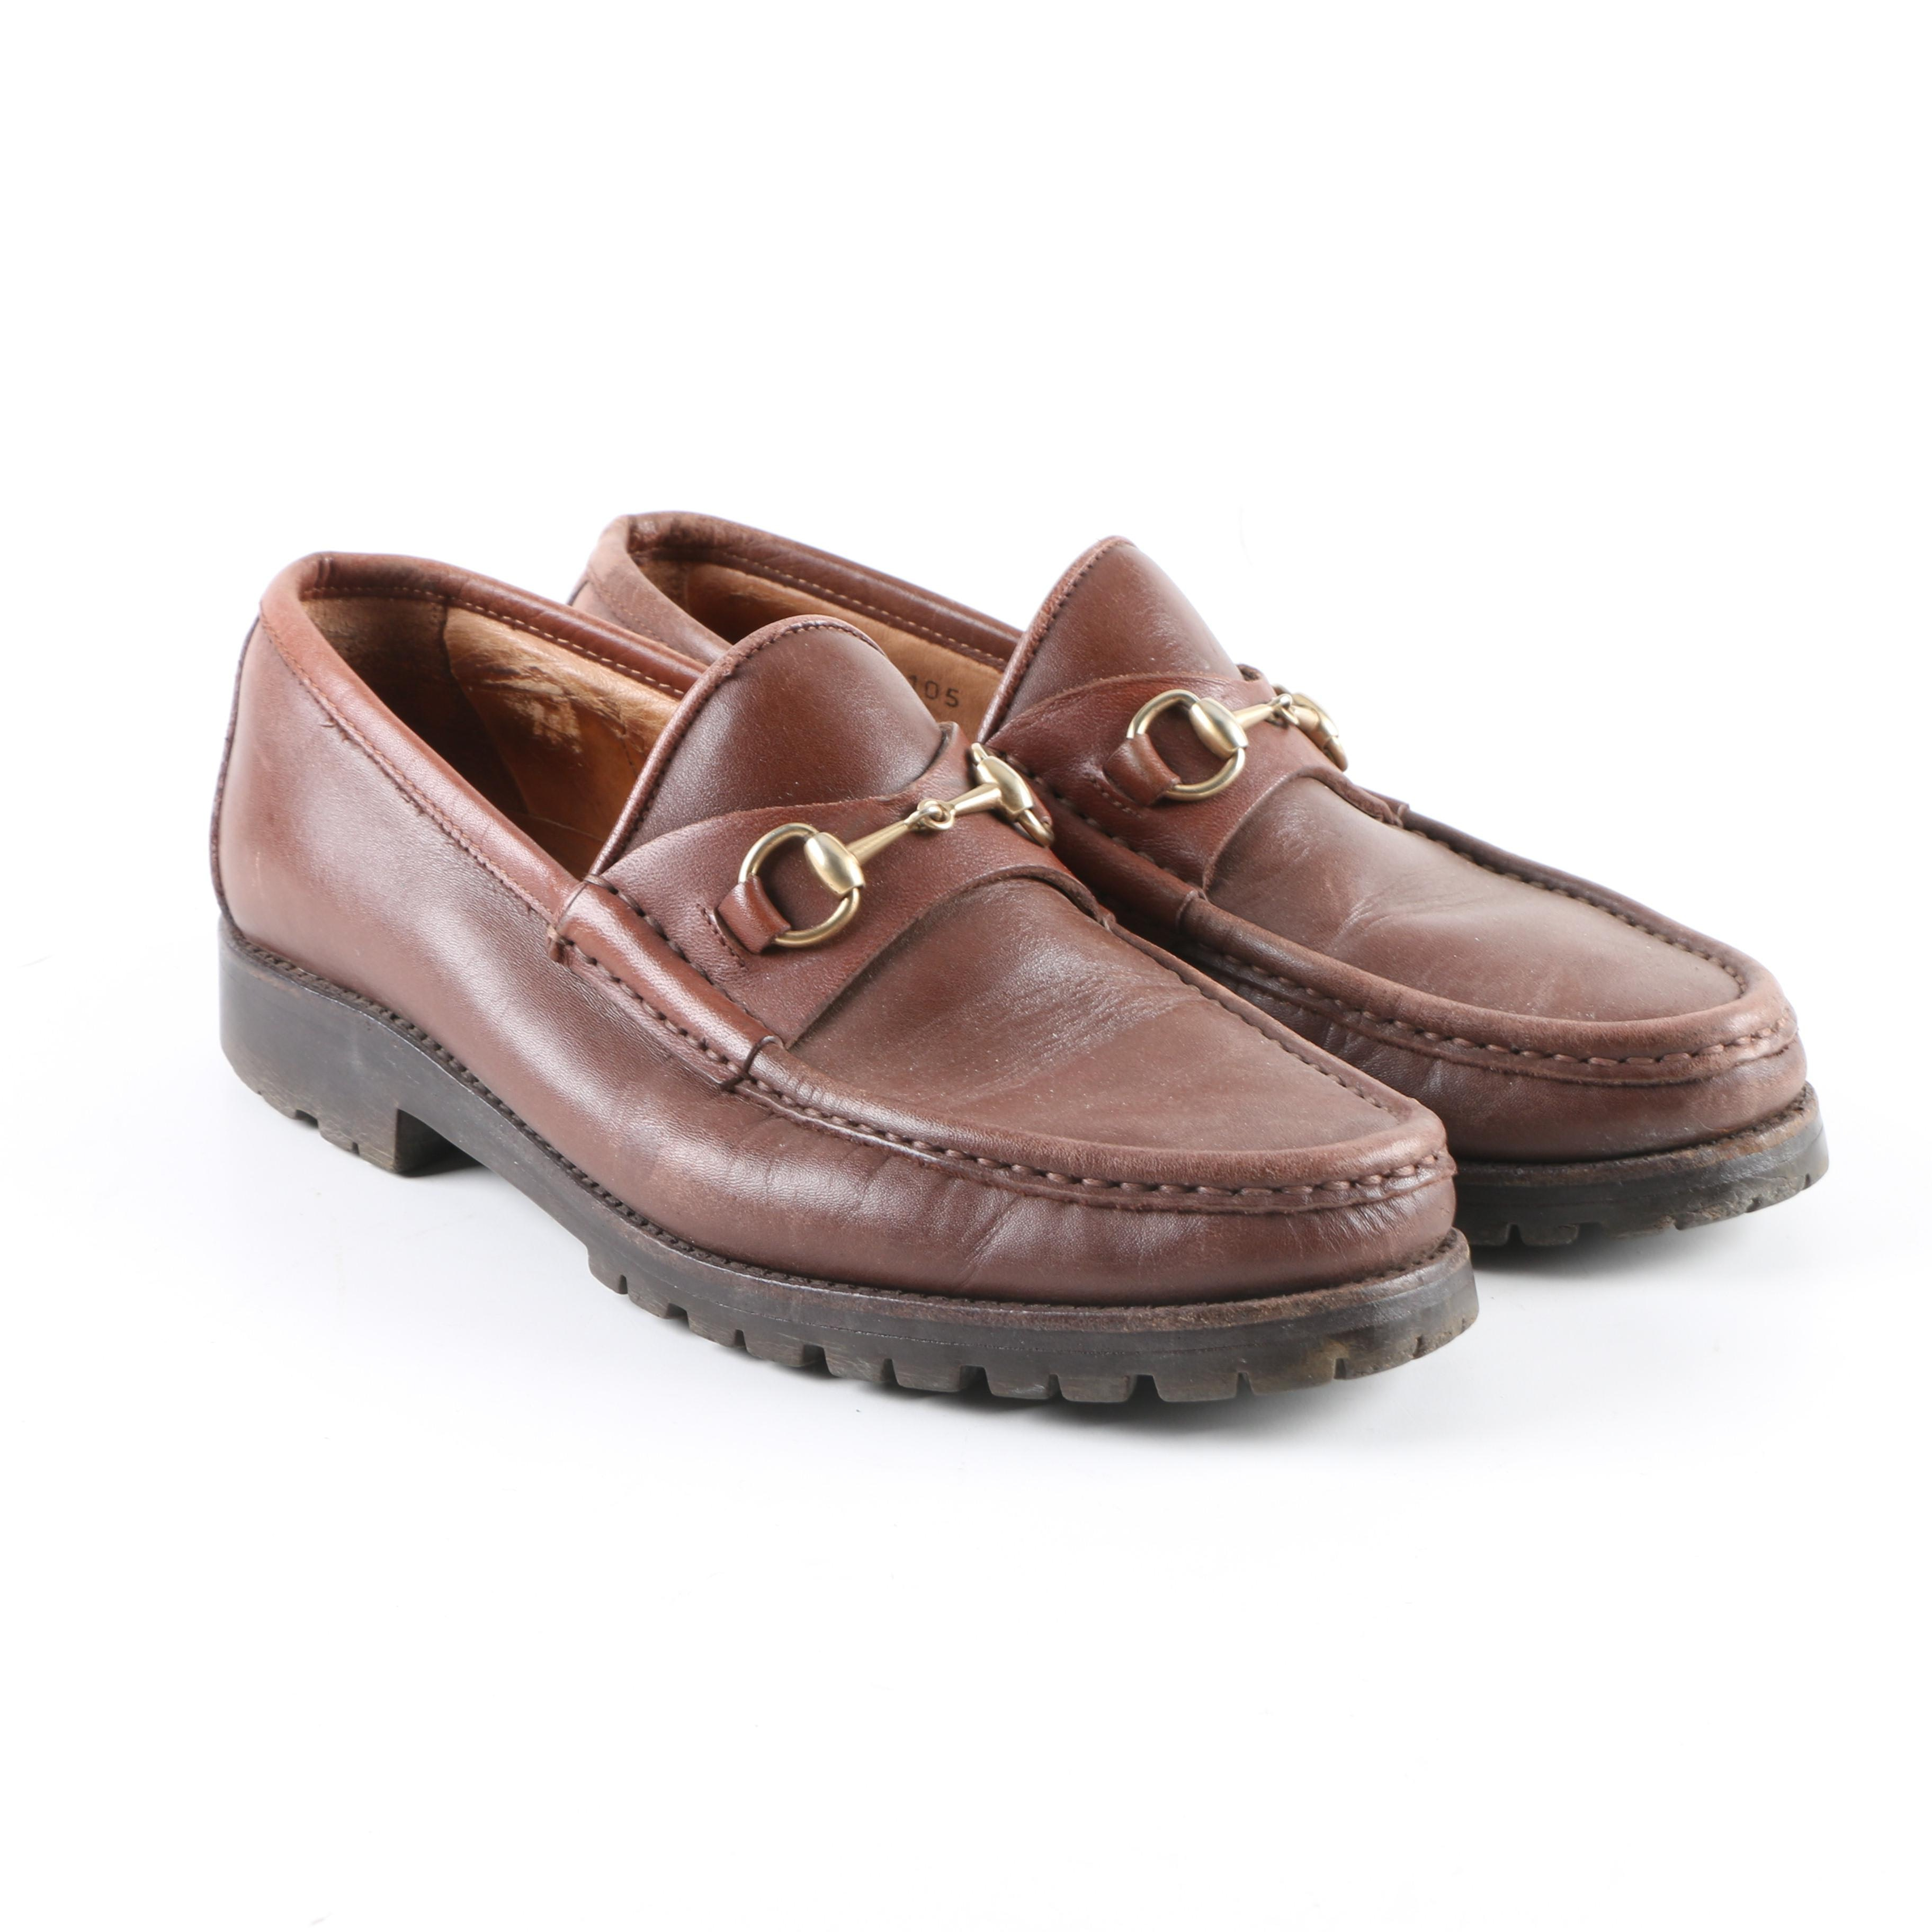 Women's Gucci Brown Leather Horsebit Loafers